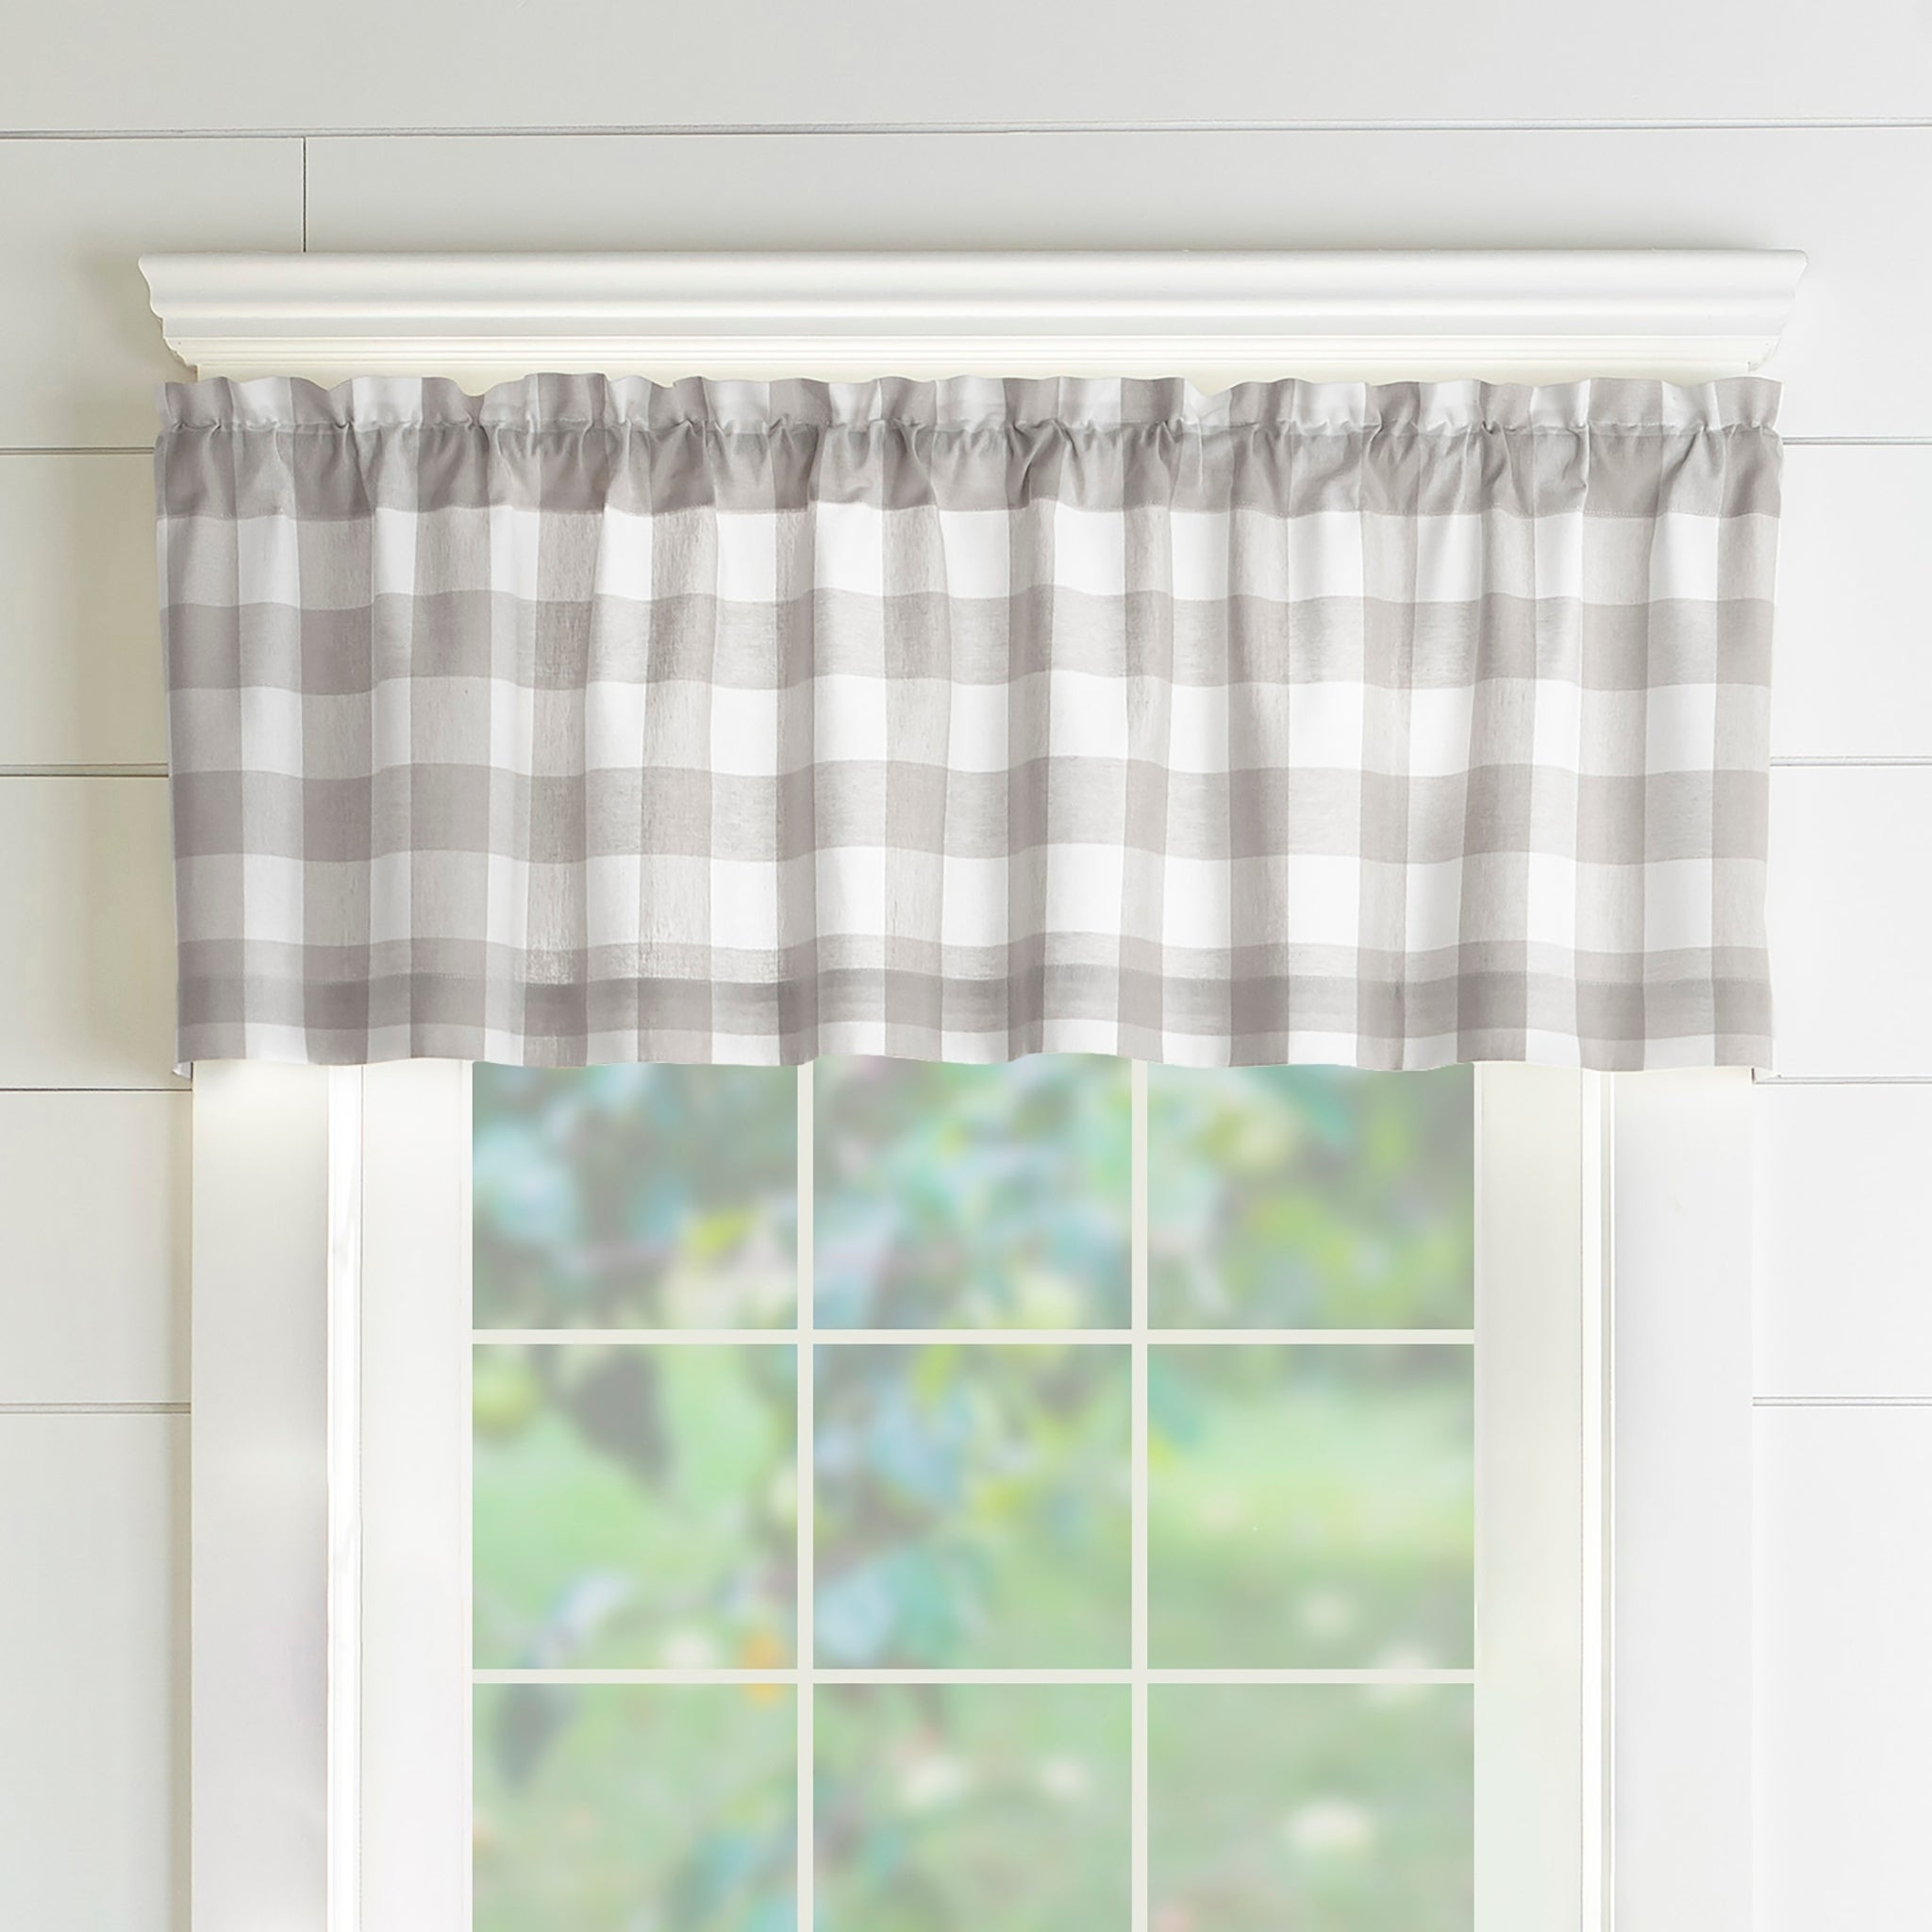 The Gray Barn Emily Gulch Buffalo Check Kitchen Window Valance Regarding Grandin Curtain Valances In Black (View 5 of 20)